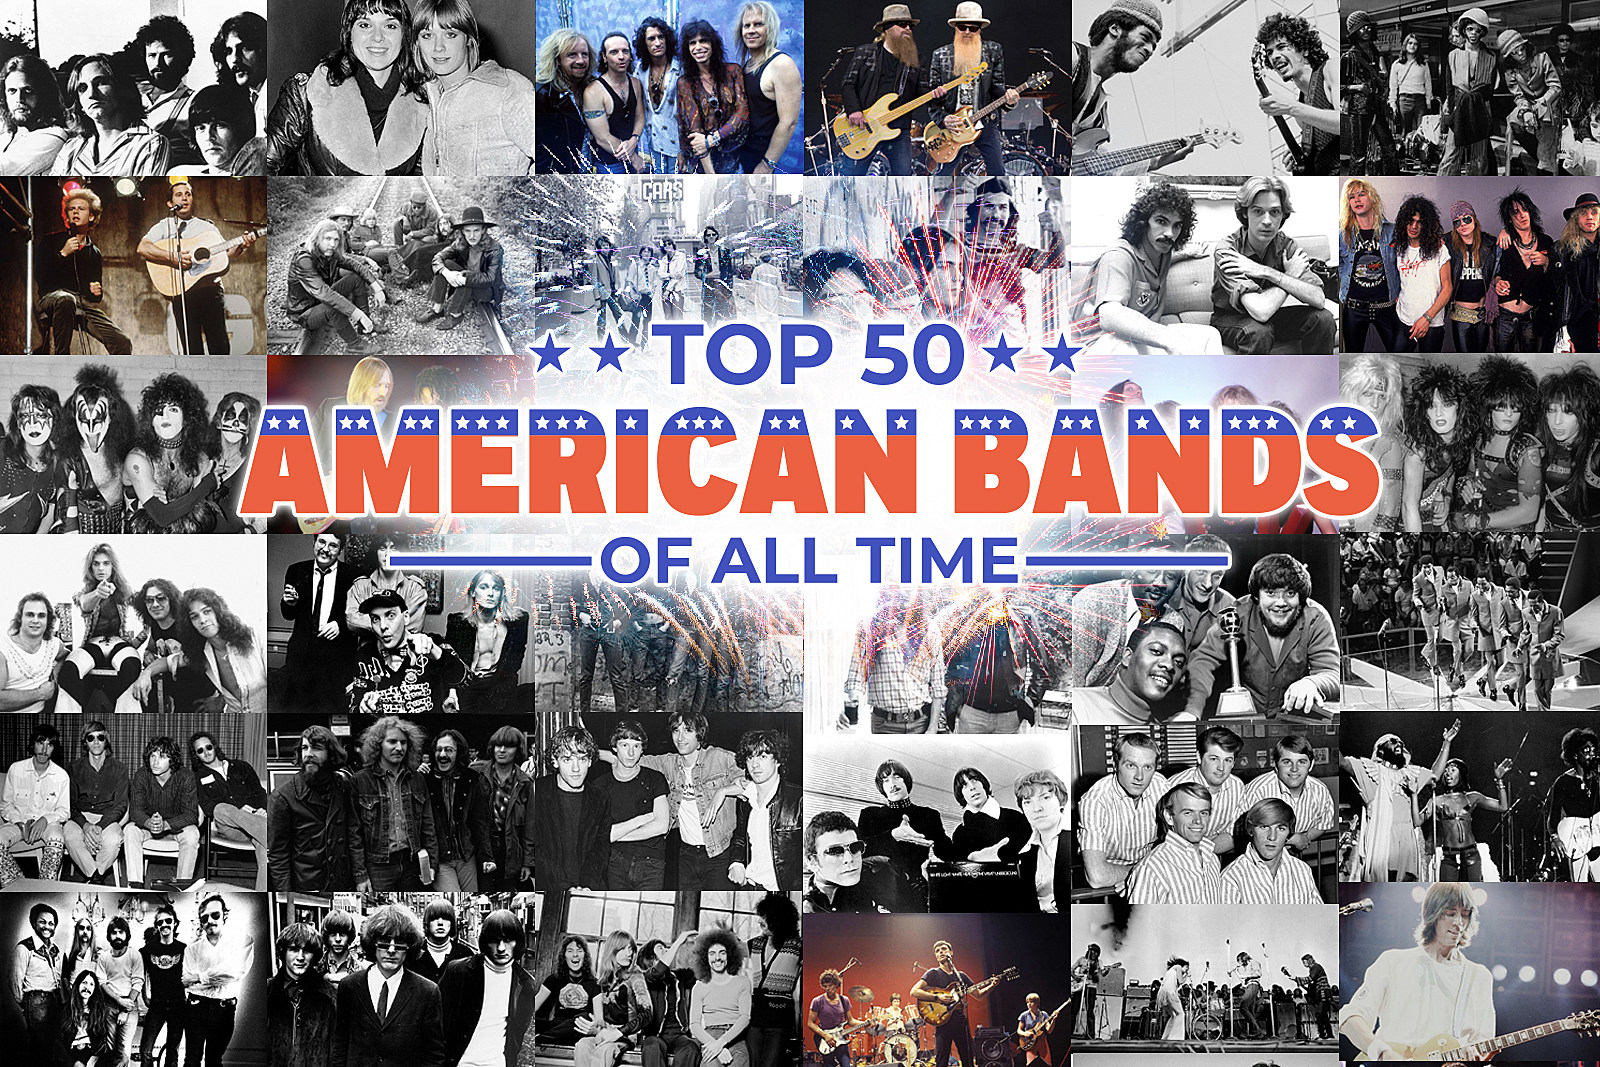 Top 50 American Bands of All Time